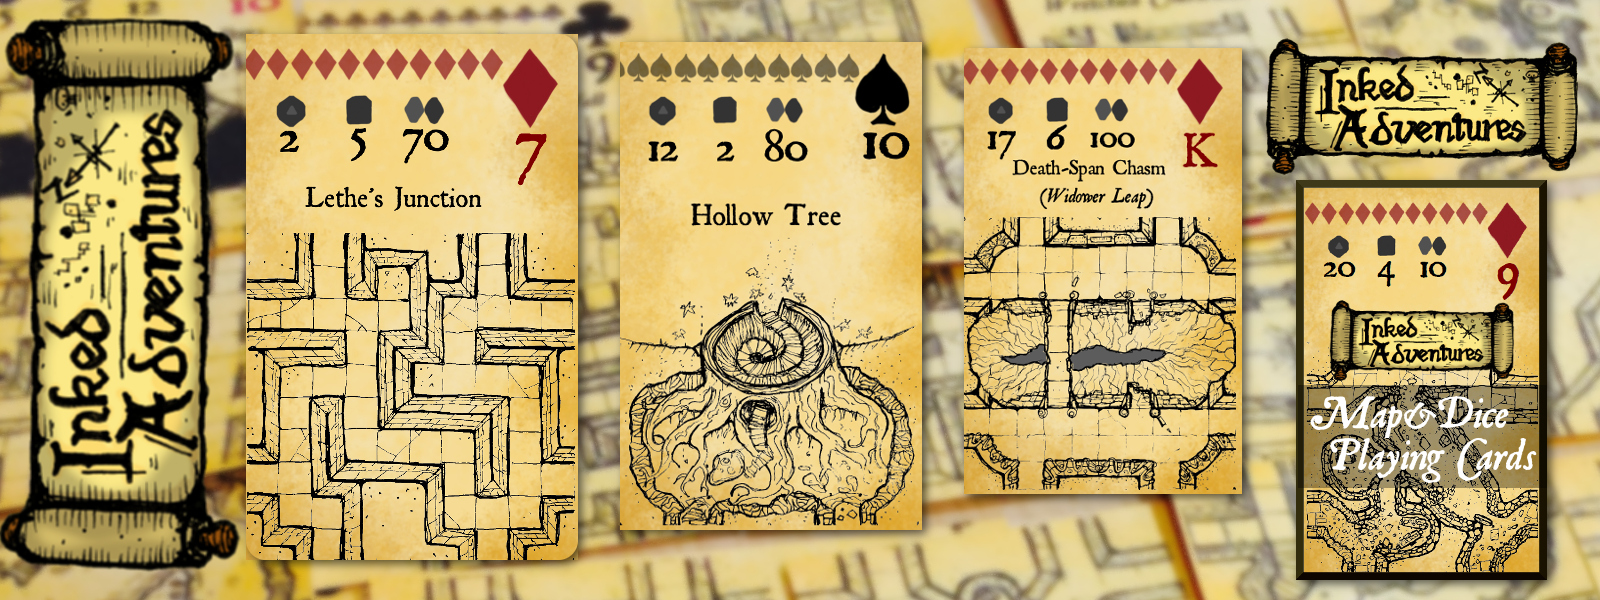 Art for Inked Adventures Map and Dice Playing Cards DriveThruRPG DriveThruCards TheGameCrafterEdition